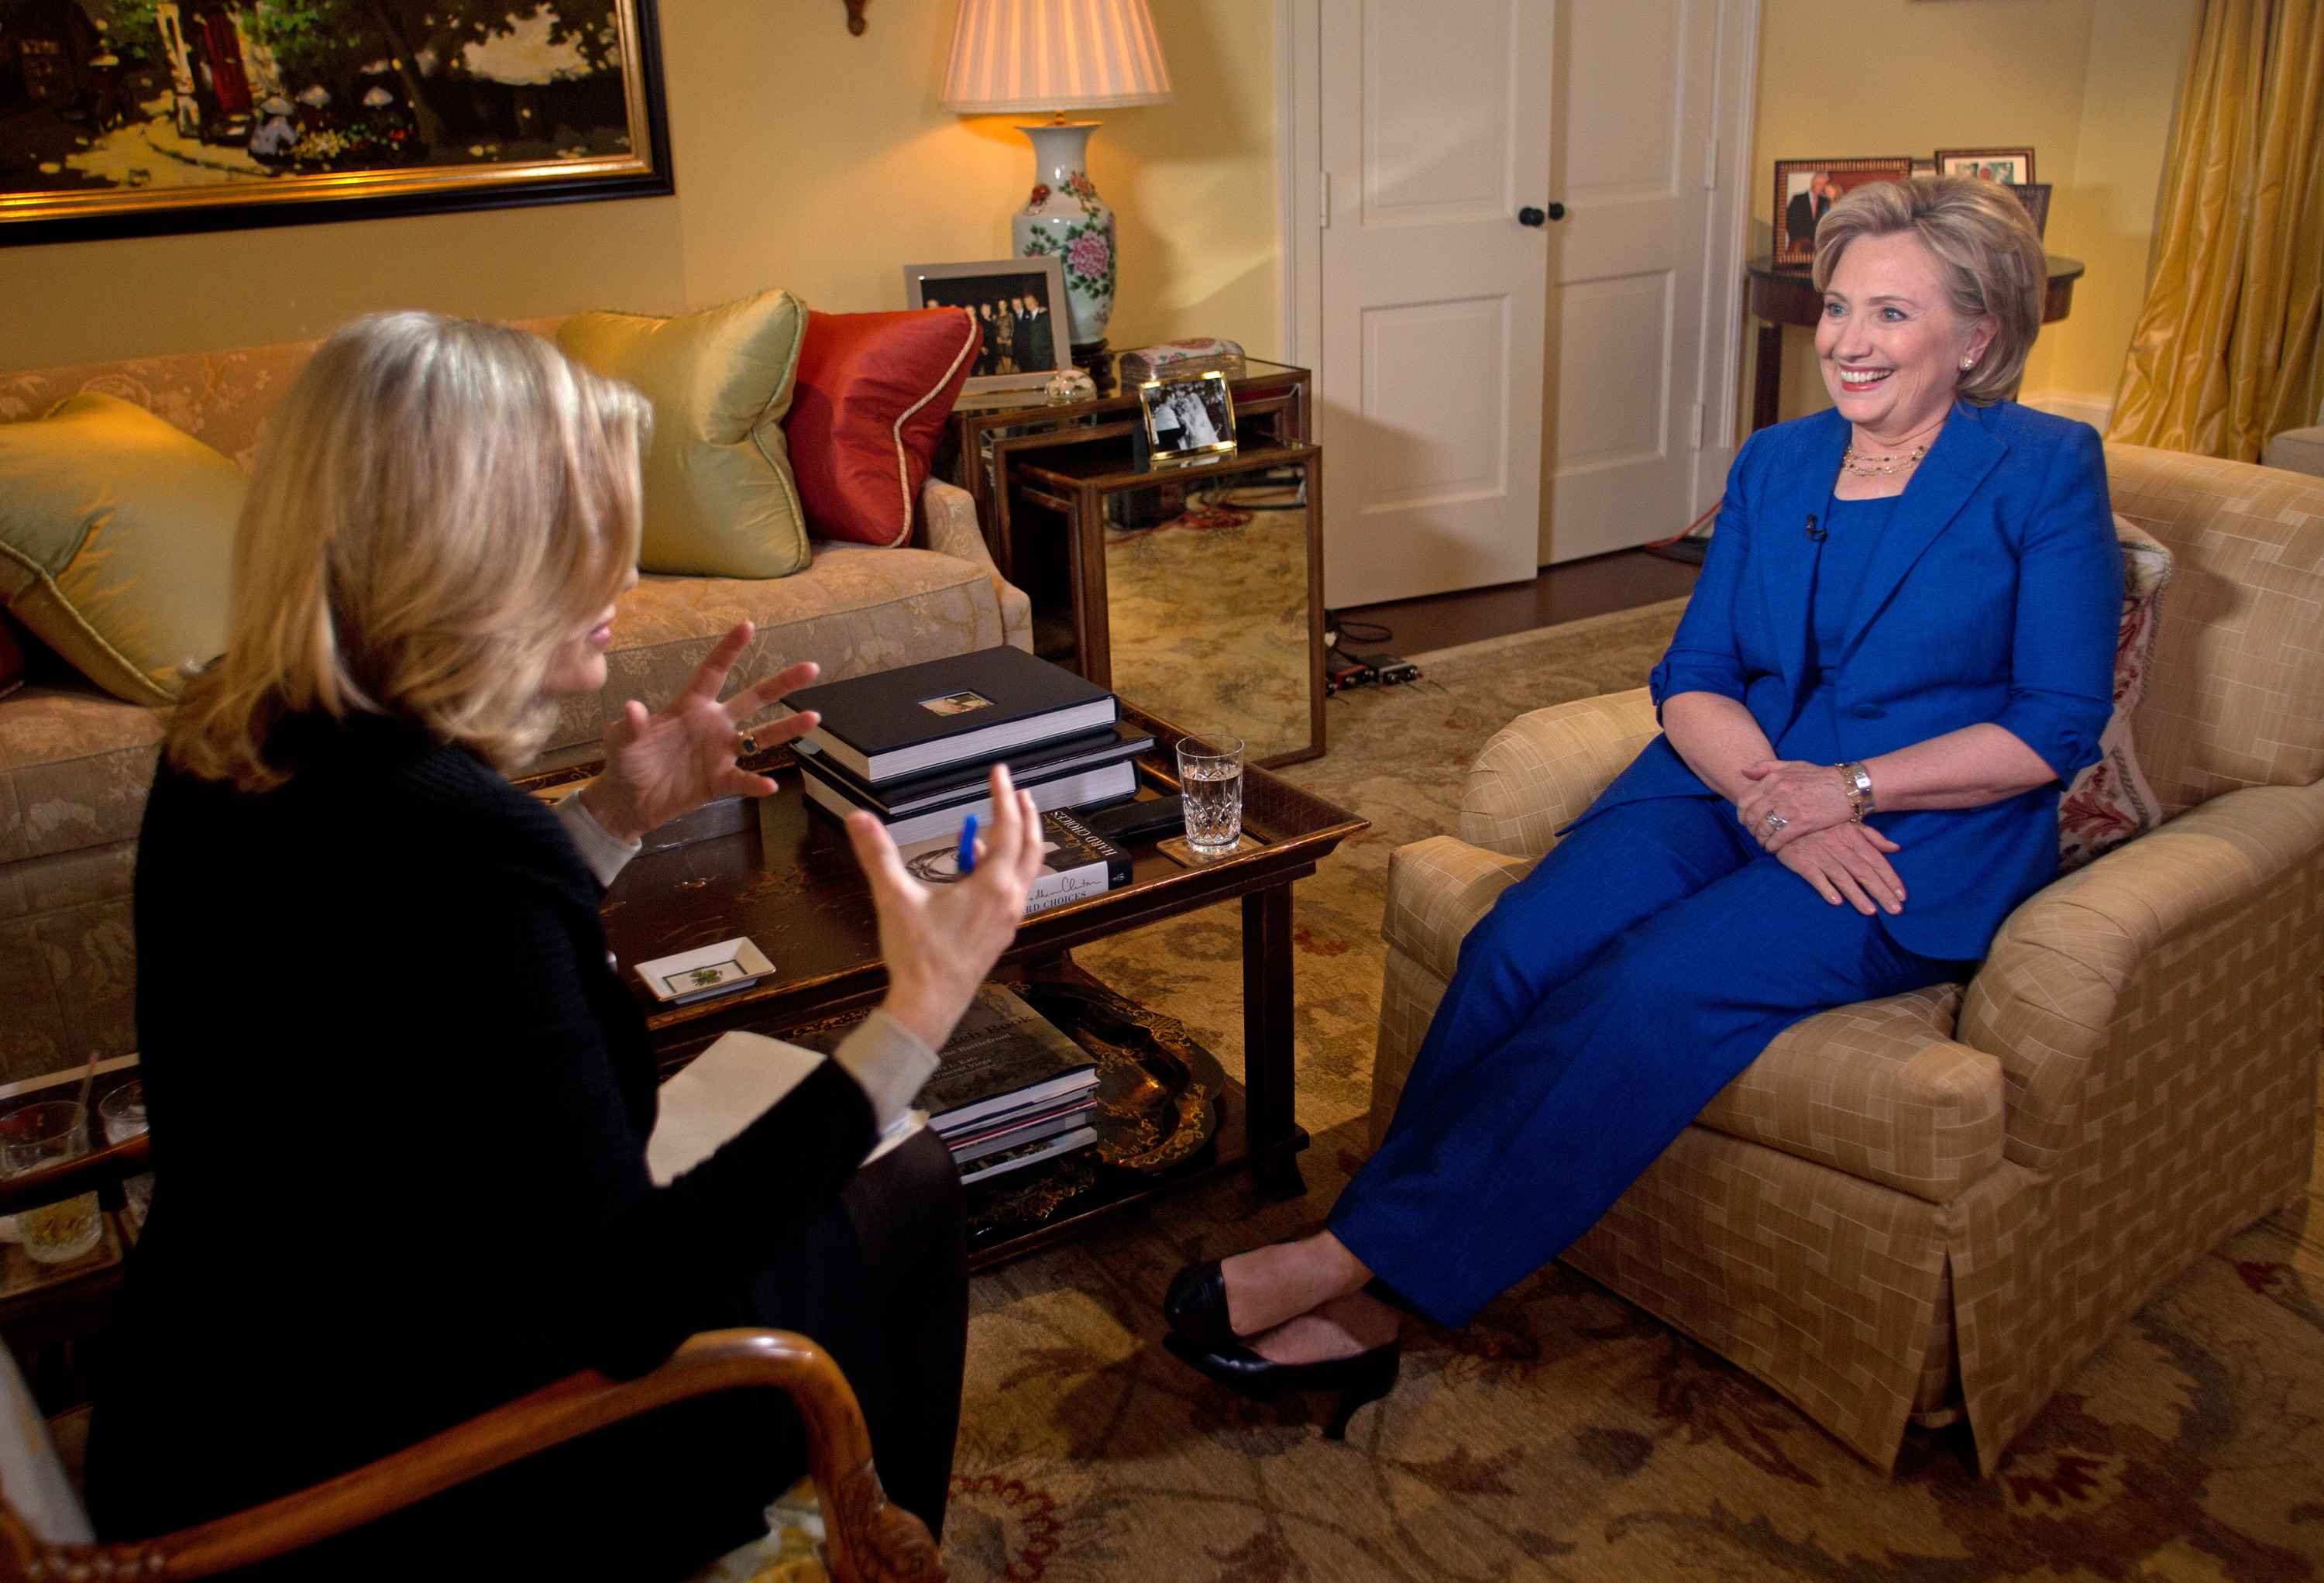 Hillary Clinton talks with ABC News anchor Diane Sawyer for her first television interview in conjunction with the release of her new book on Monday, June 9.